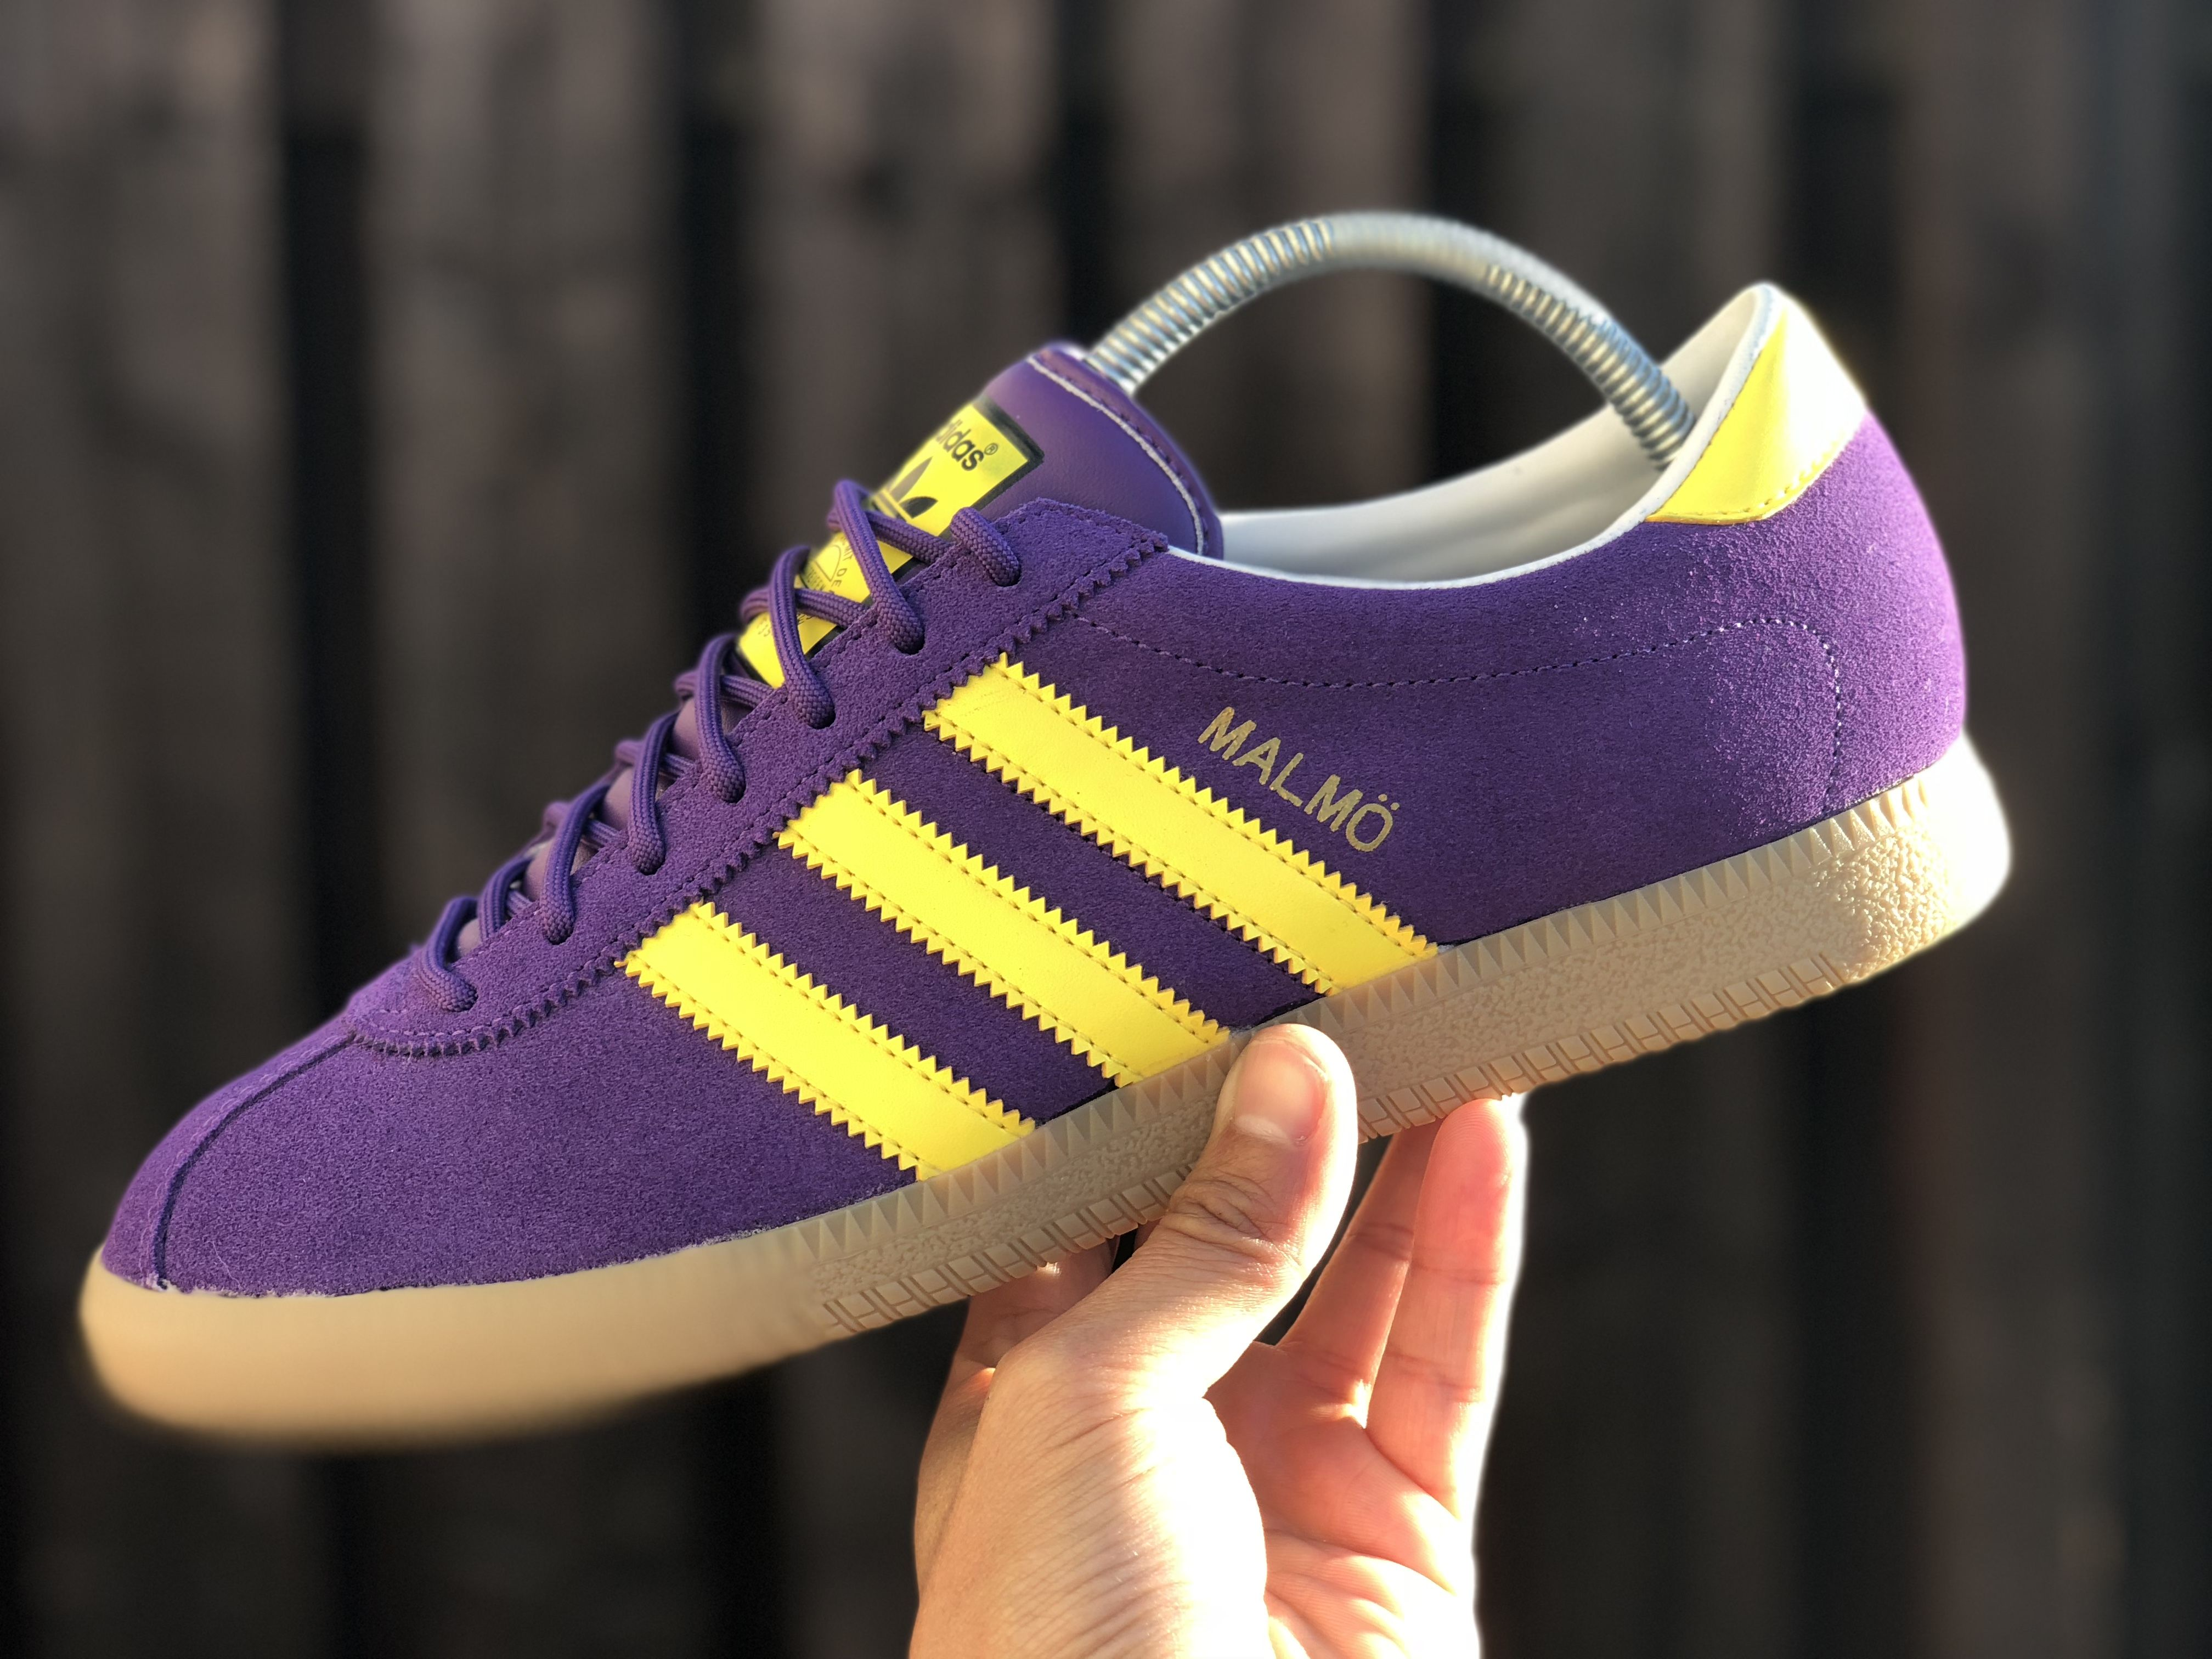 cheaper 09c8a 32a55 Adidas Malmo   Sneakers in 2019   Adidas, Adidas sneakers, Sneakers